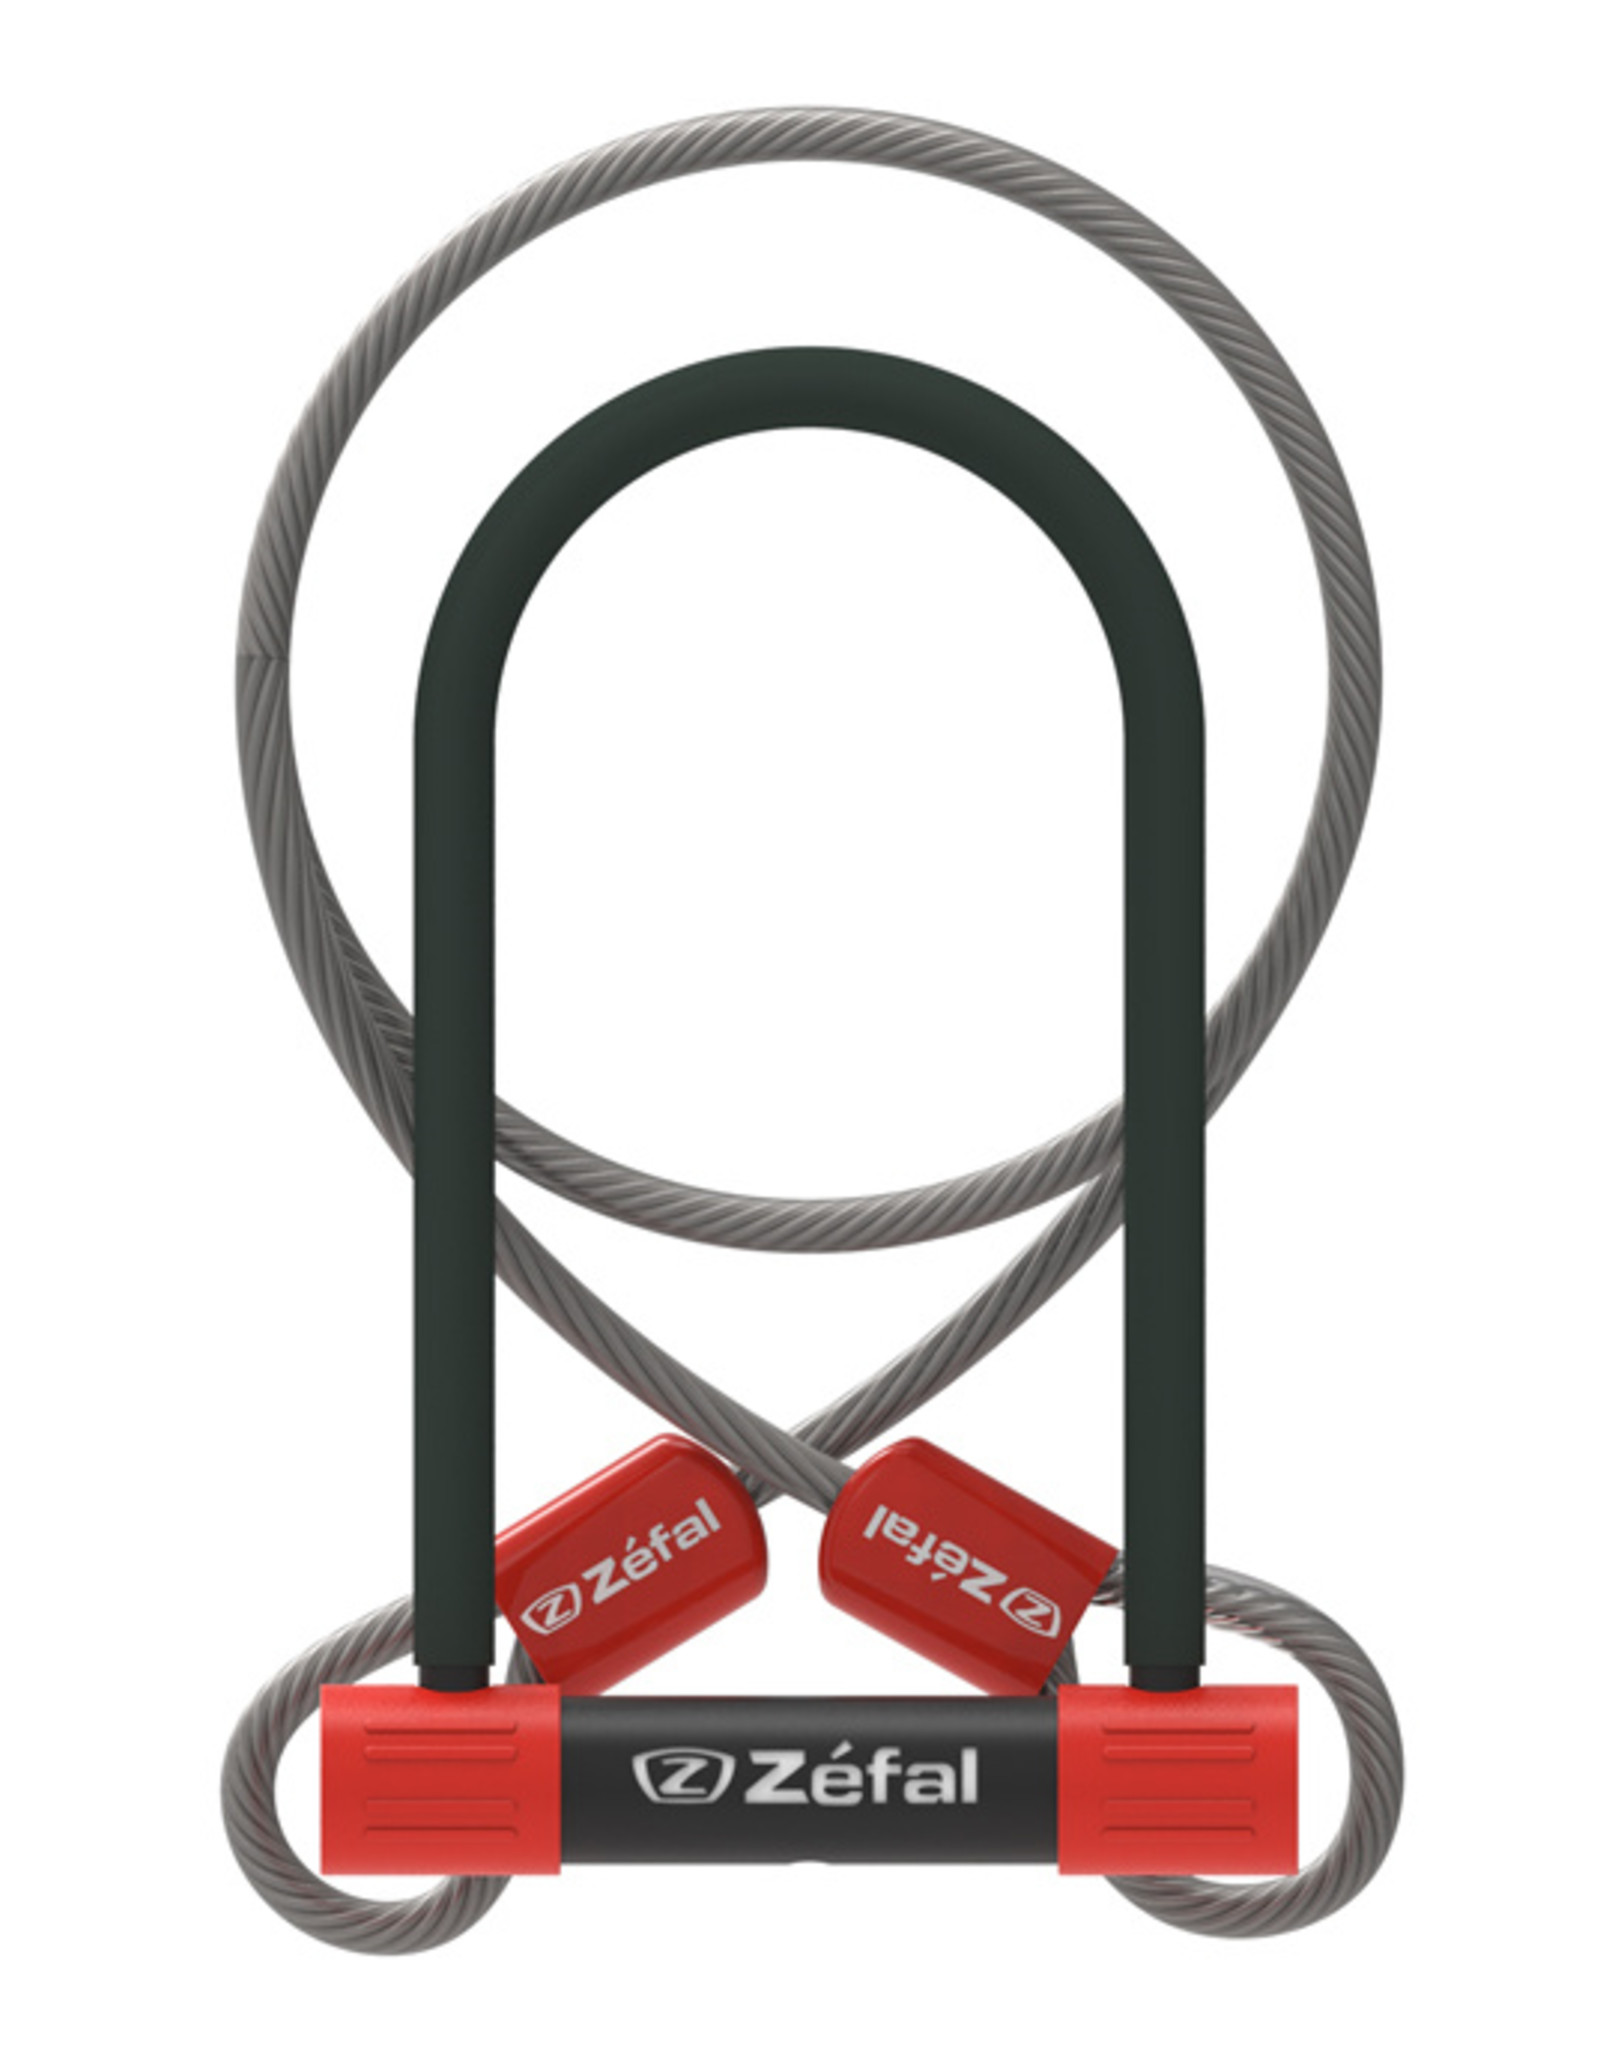 Zefal K-Traz U13 U-Lock with Cable 230mm. SOLD SECURE Silver